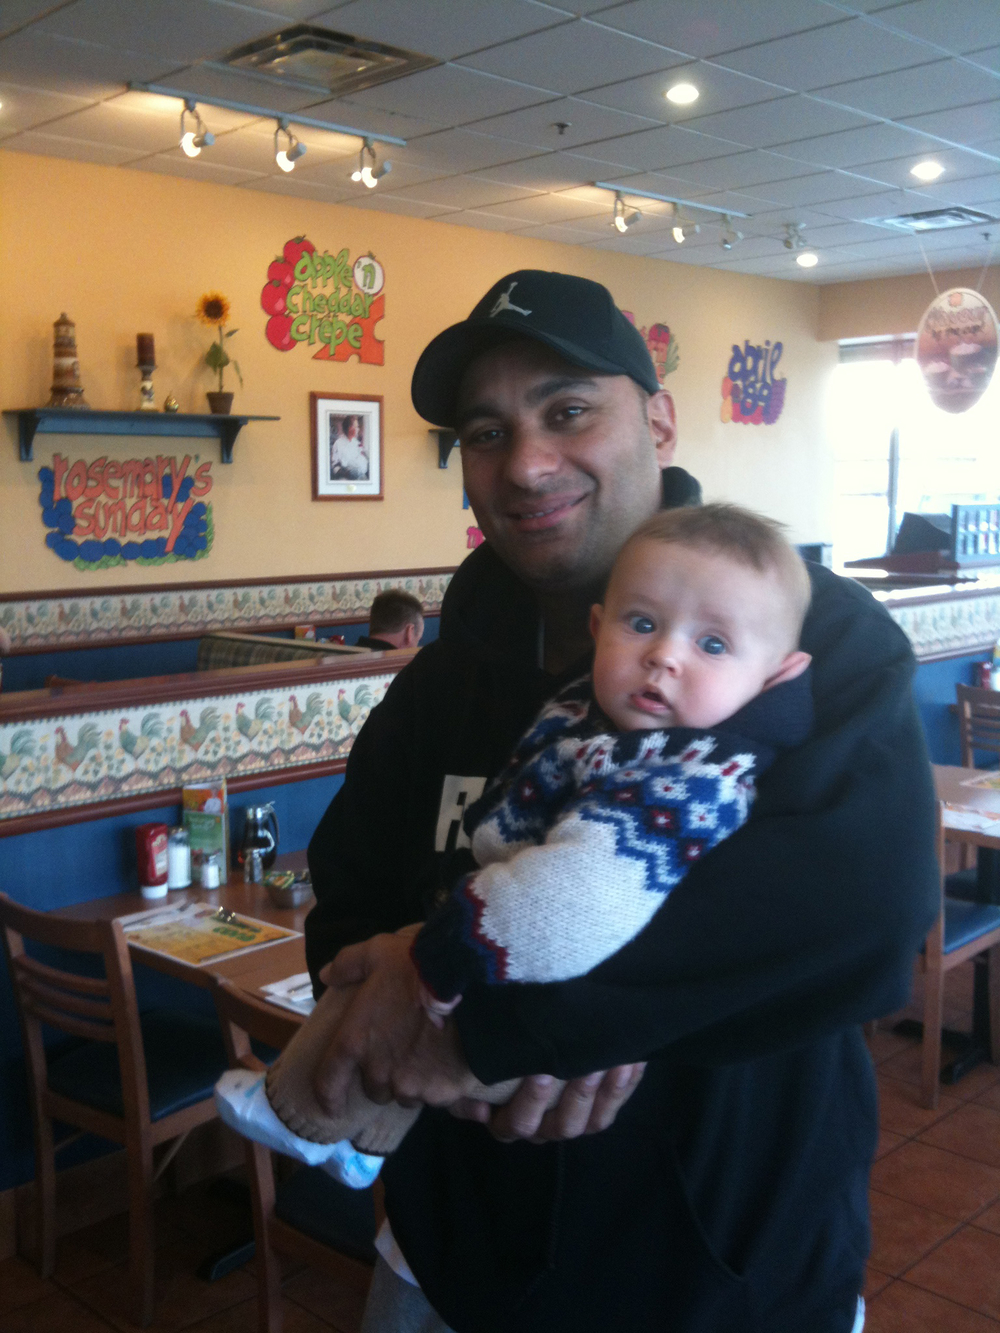 Happy 5 Months Birthday Eric From Russell Peters с днем